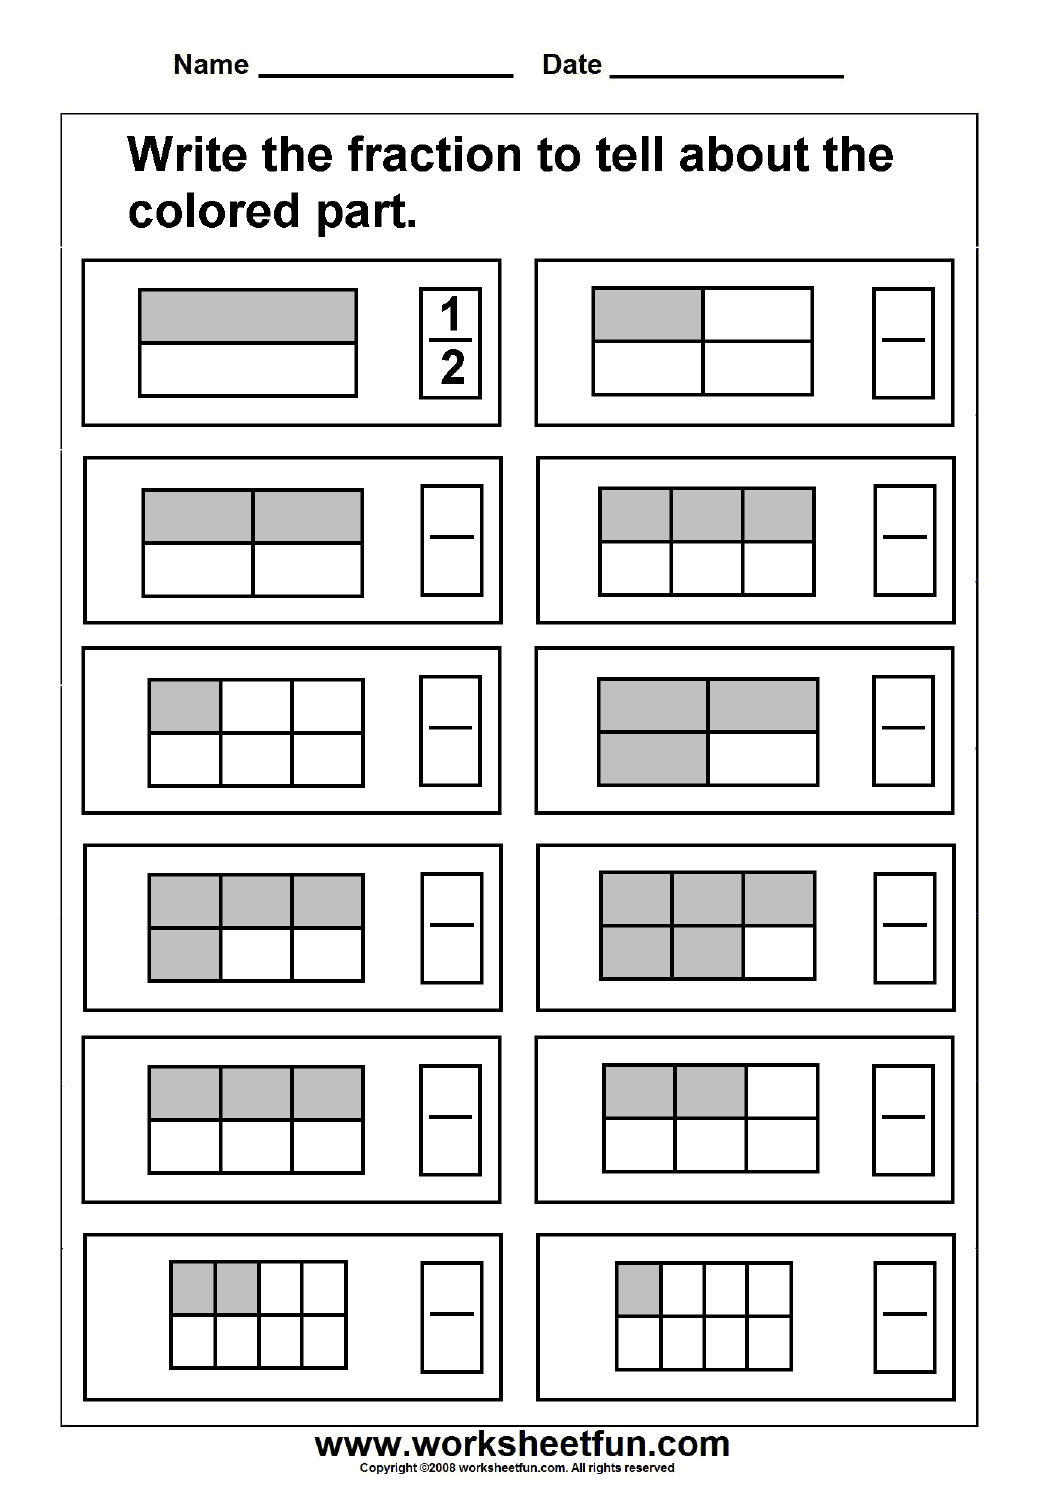 Fraction / FREE Printable Worksheets – Worksheetfun math worksheets, worksheets, grade worksheets, and alphabet worksheets Free Fractions Worksheet 1492 x 1054